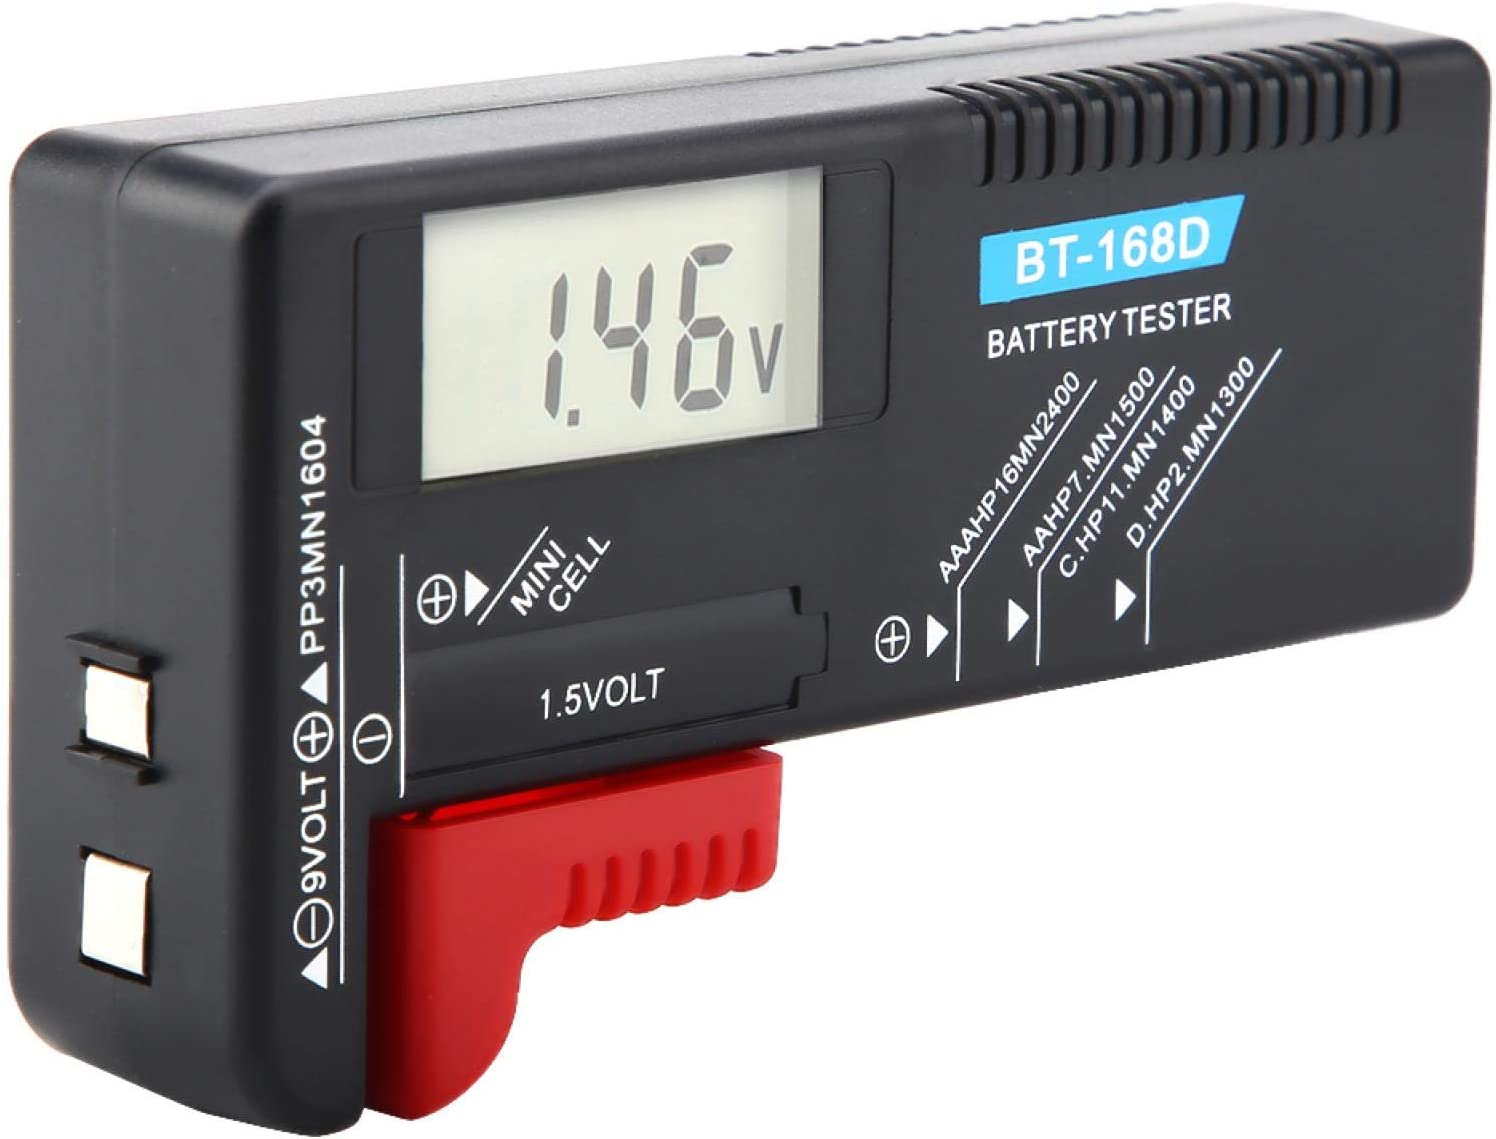 Vbestlife Universal Digital Battery Tester, Digital LCD AA/AAA/C/D/9V/1.5V Button Cell Battery Volt Tester, Quickly Test All Kinds of Batteries